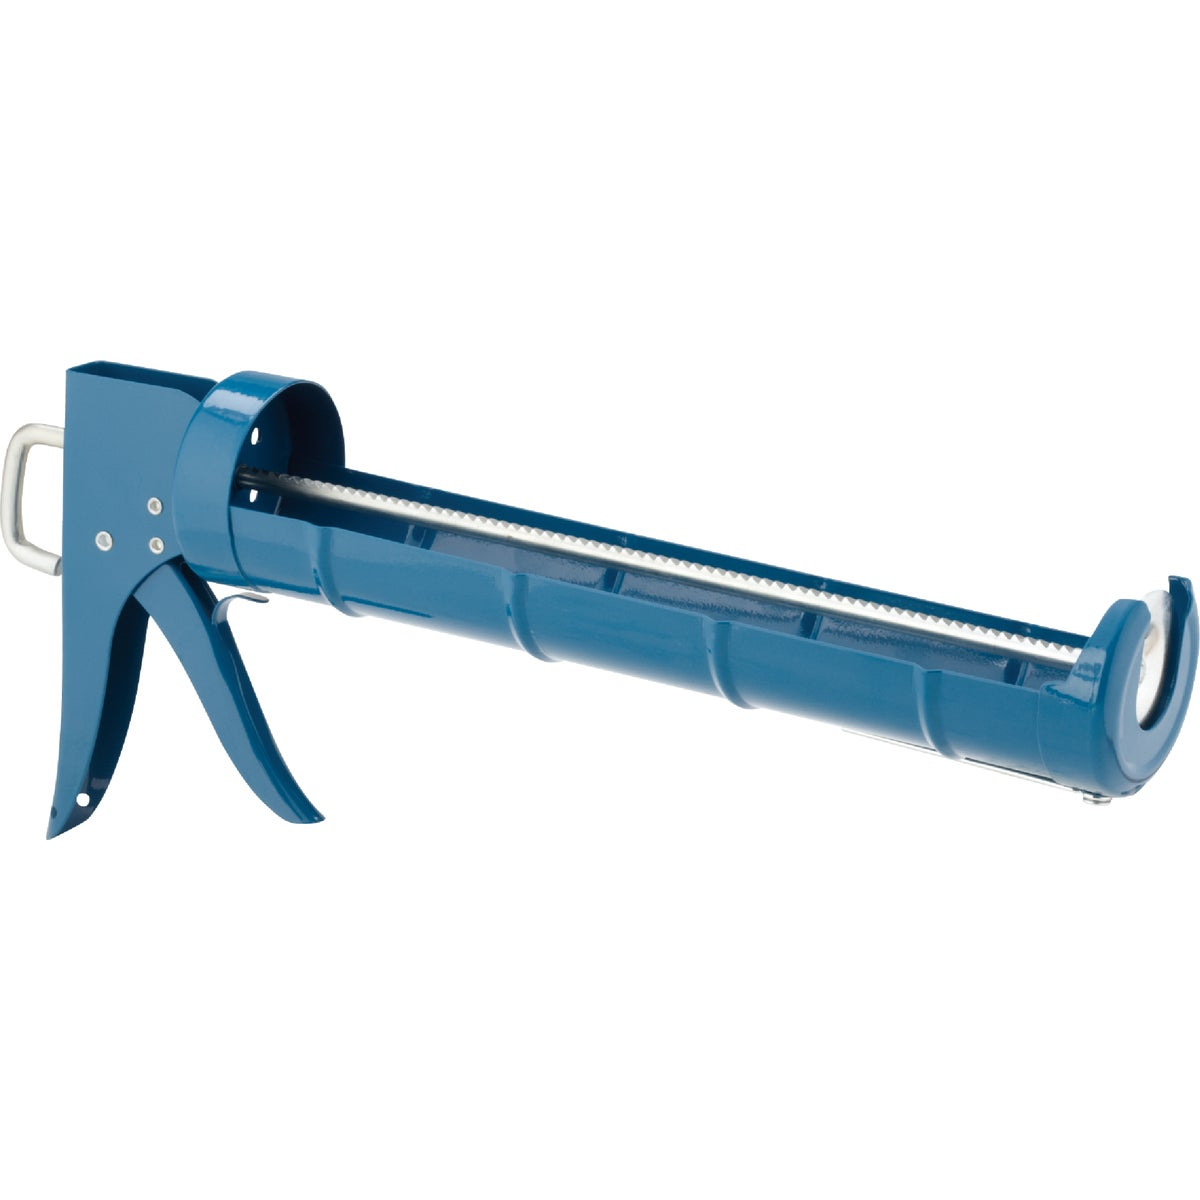 QT CRADLE CAULK GUN - YD-127 by Do it Best